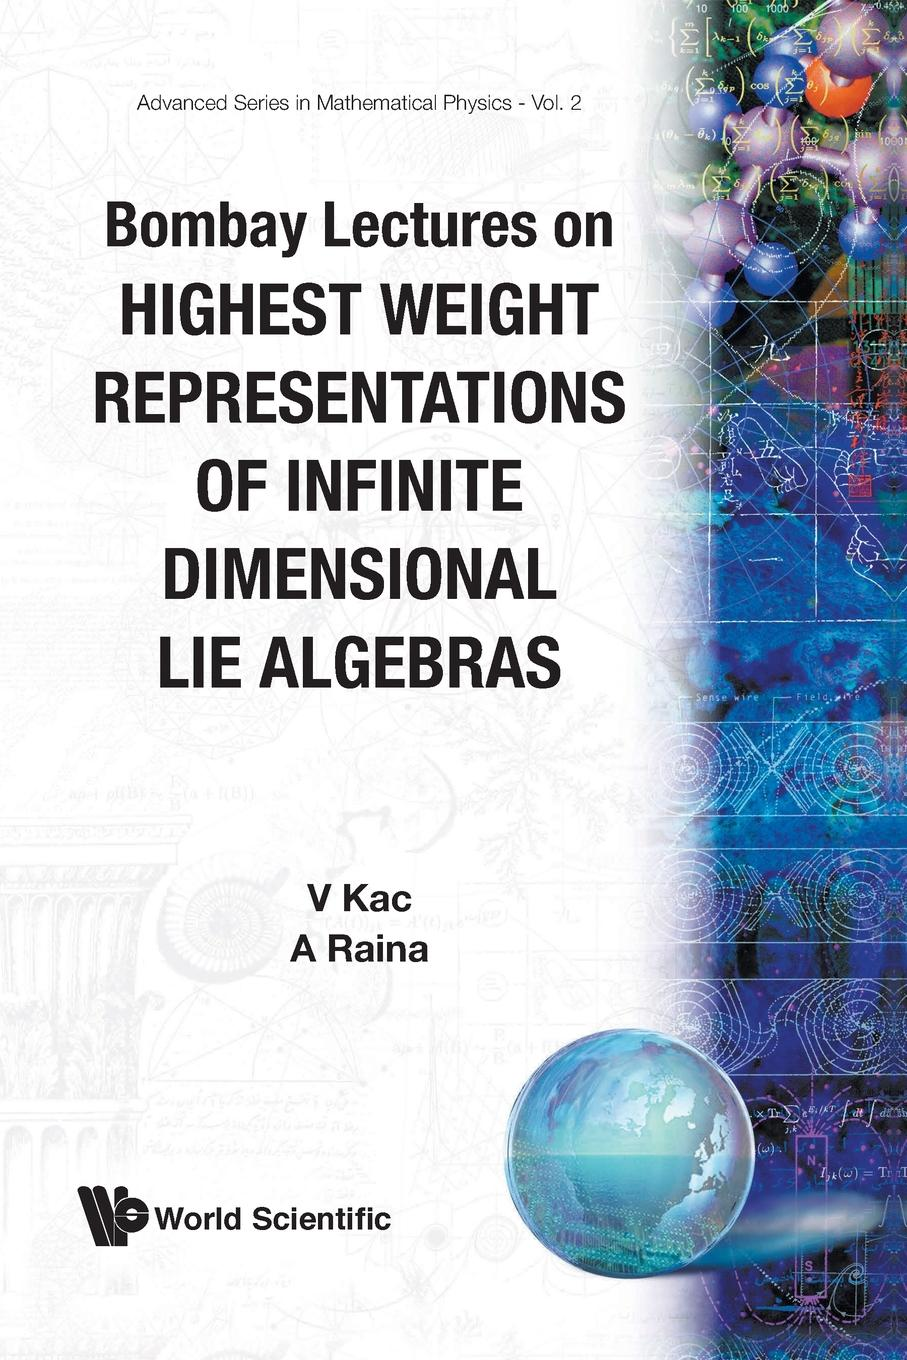 Victor G Kac, Ashok K Raina BOMBAY LECTURES ON HIGHEST WEIGHT REPRESENTATIONS OF INFINITE DIMENSIONAL LIE ALGEBRA paul r halmos lectures on boolean algebras